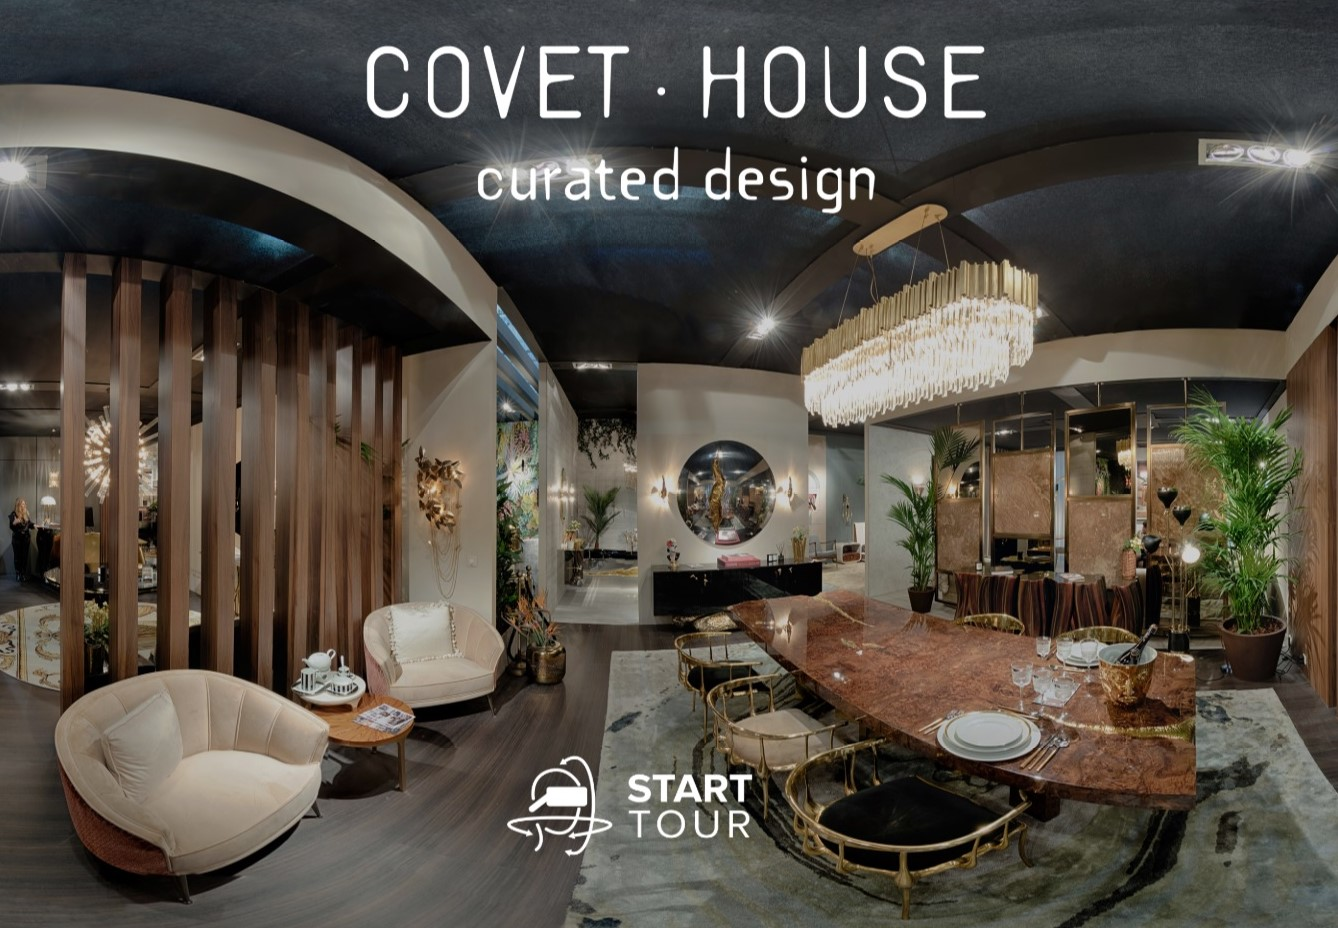 Maison Et Objet 2020: Luxury Stands' Virtual Tour  maison et objet 2020 Maison Et Objet 2020: Luxury Stands' Virtual Tour  maison objet 2020 luxury stands virtual tour 2